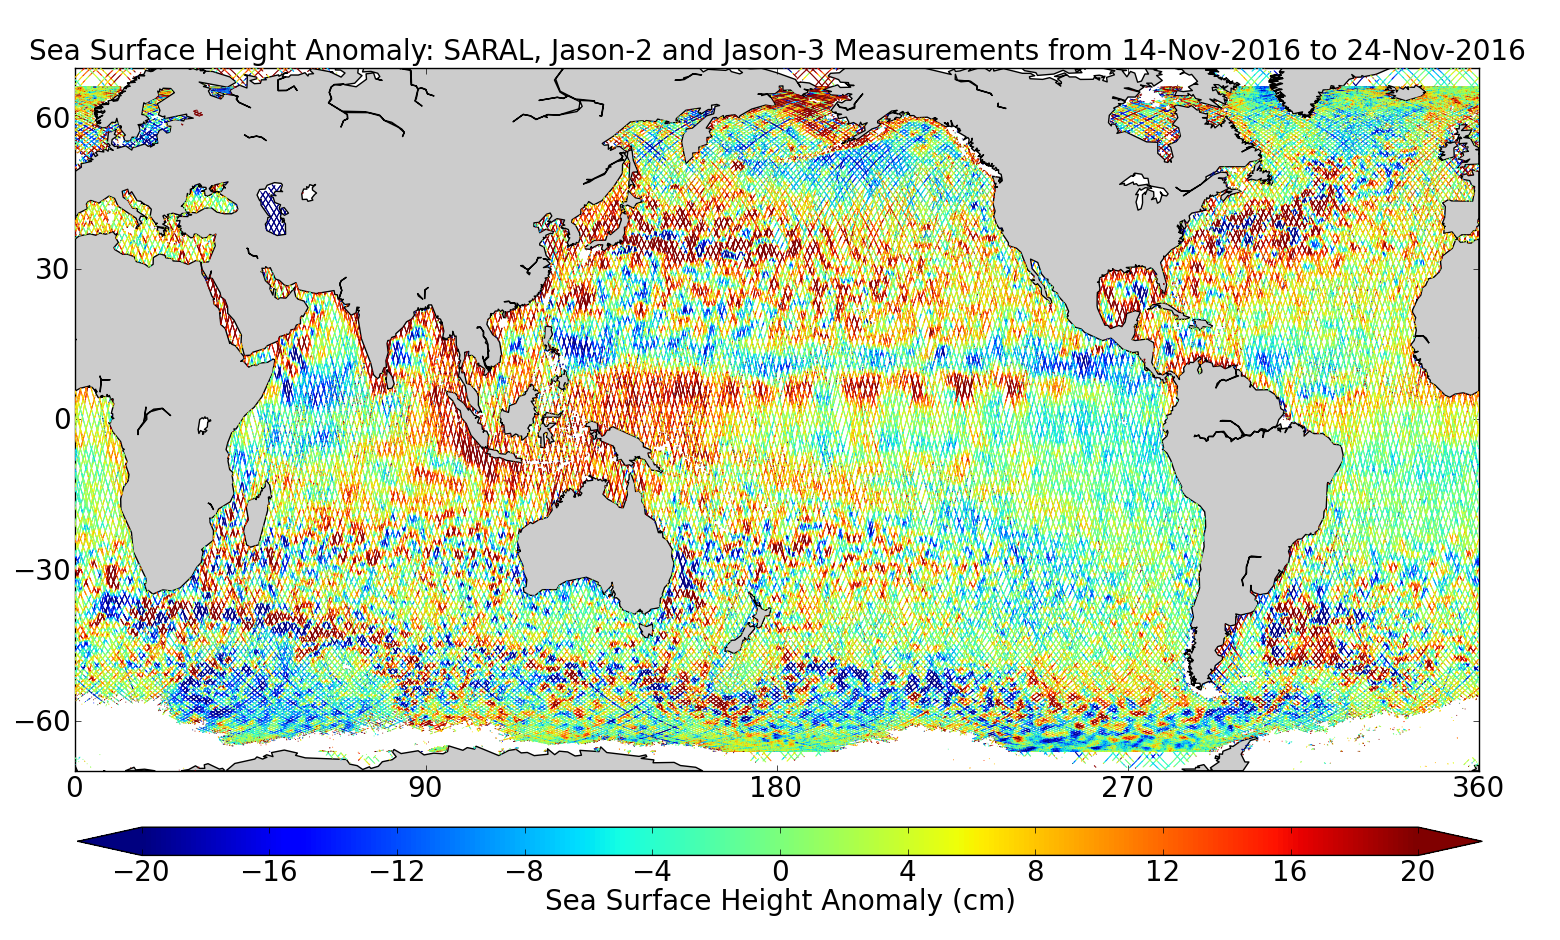 Sea Surface Height Anomaly: SARAL, Jason-2 and Jason-3 Measurements from 14-Nov-2016 to 24-Nov-2016